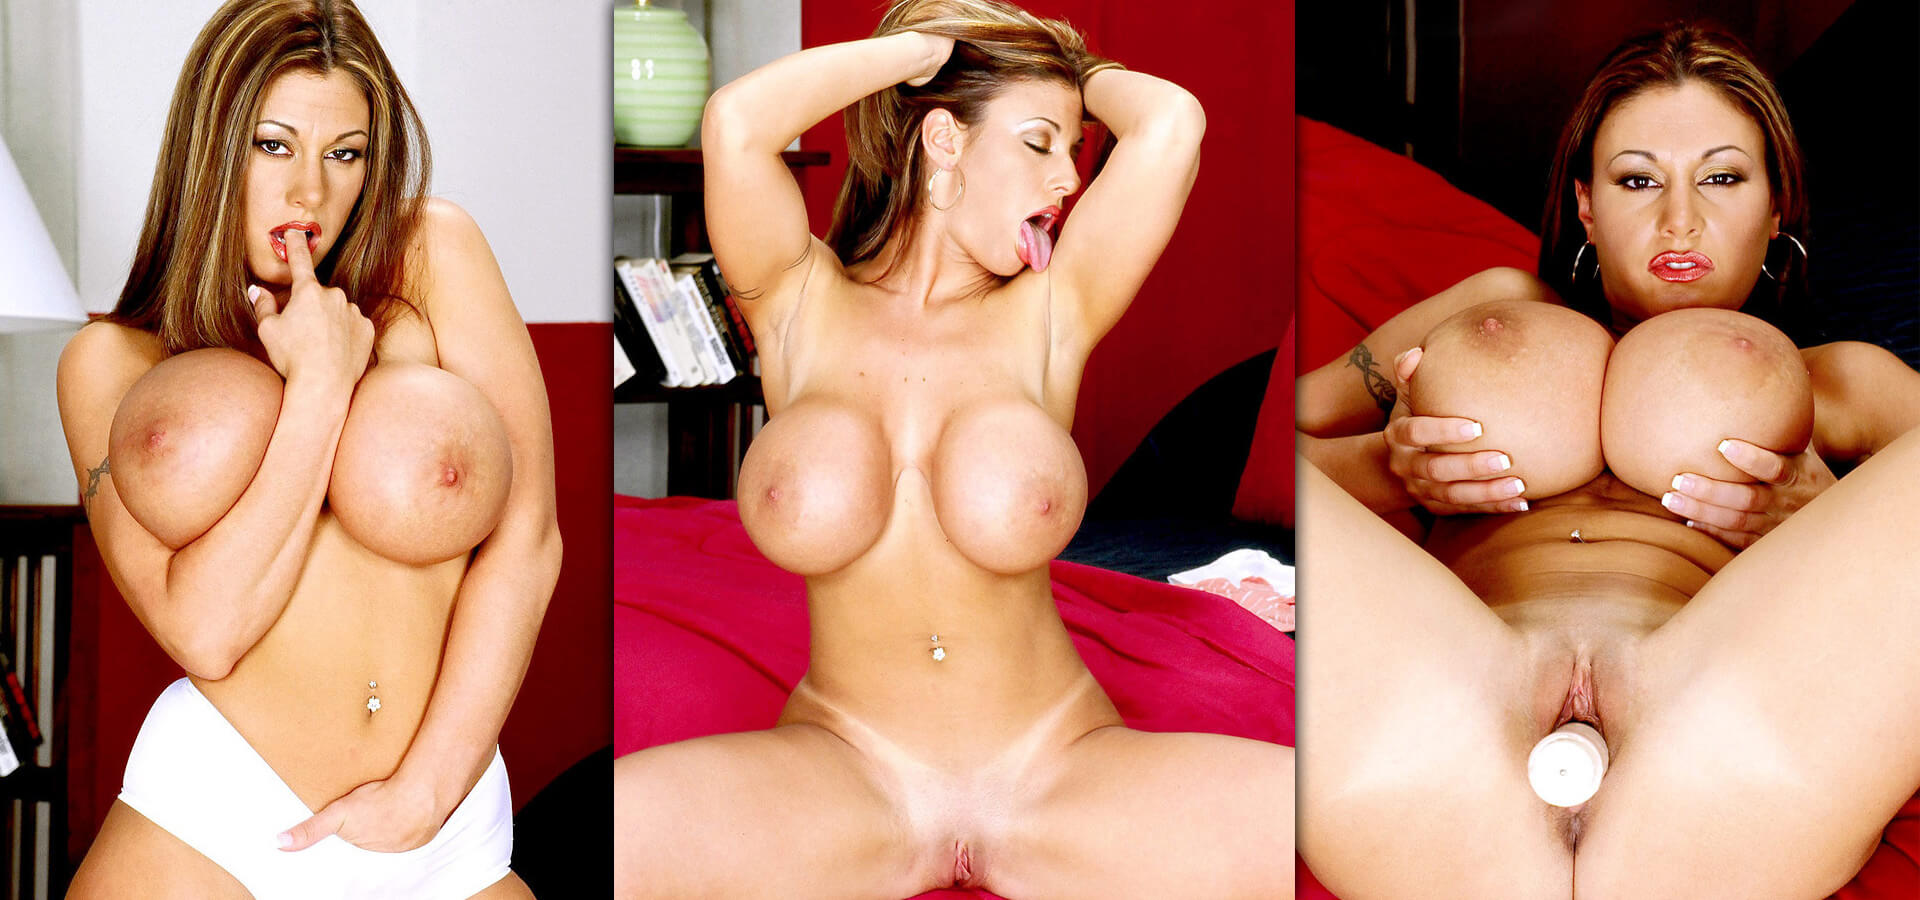 Crystal Gunns babes - Join Now!